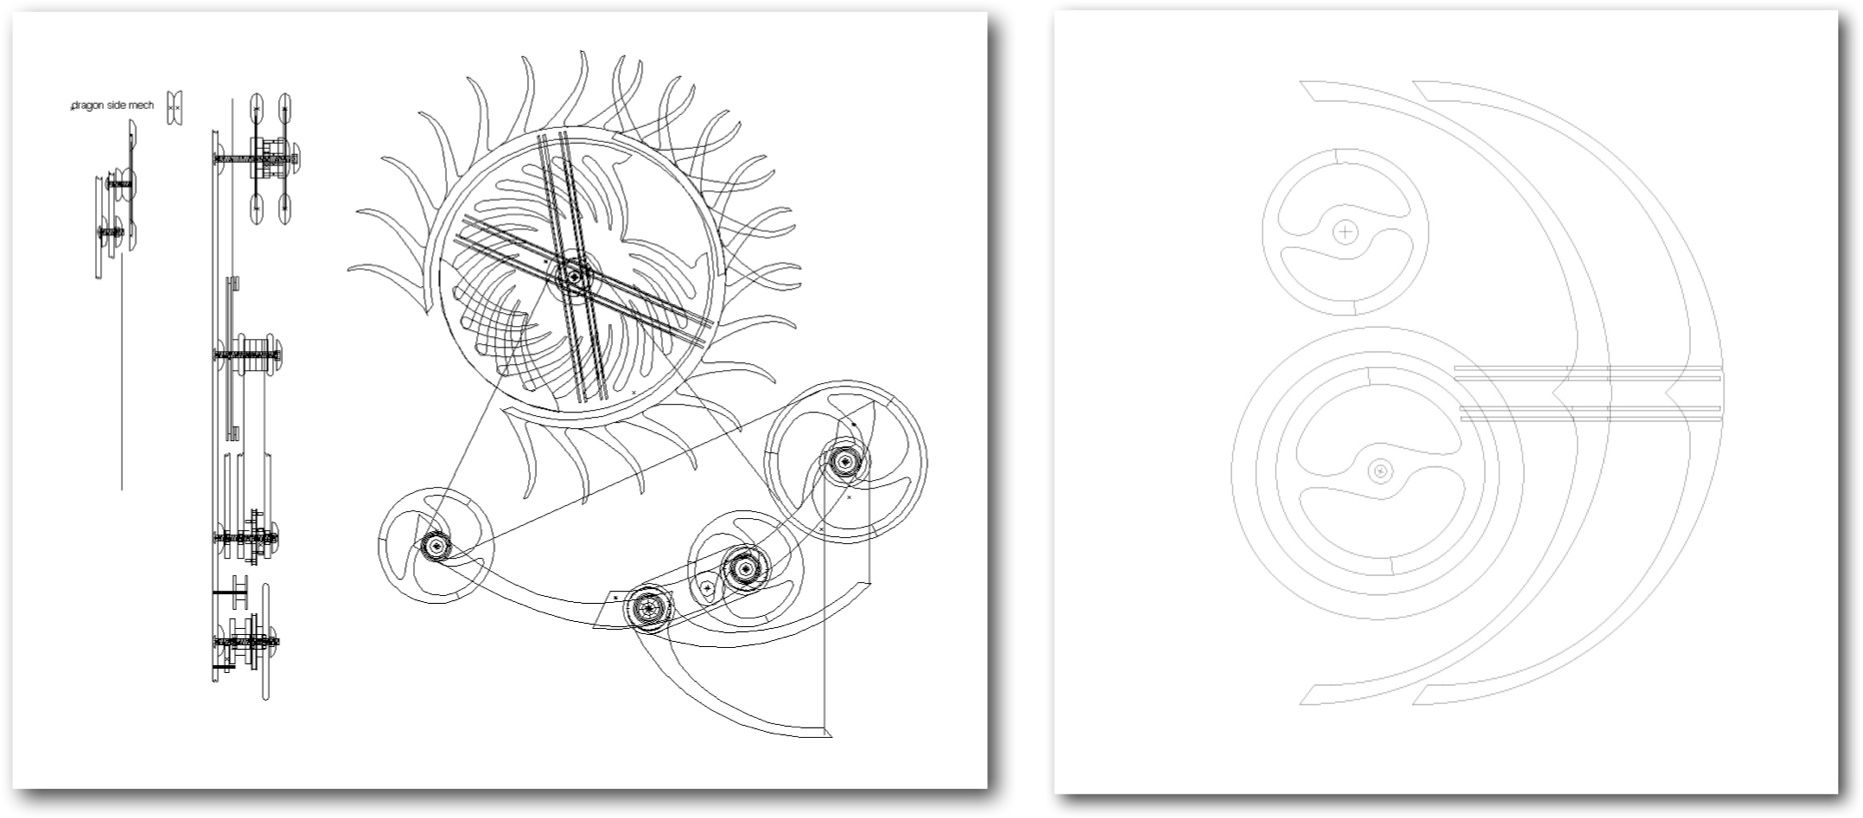 Design drawings completed by kinetic sculptor David C. Roy